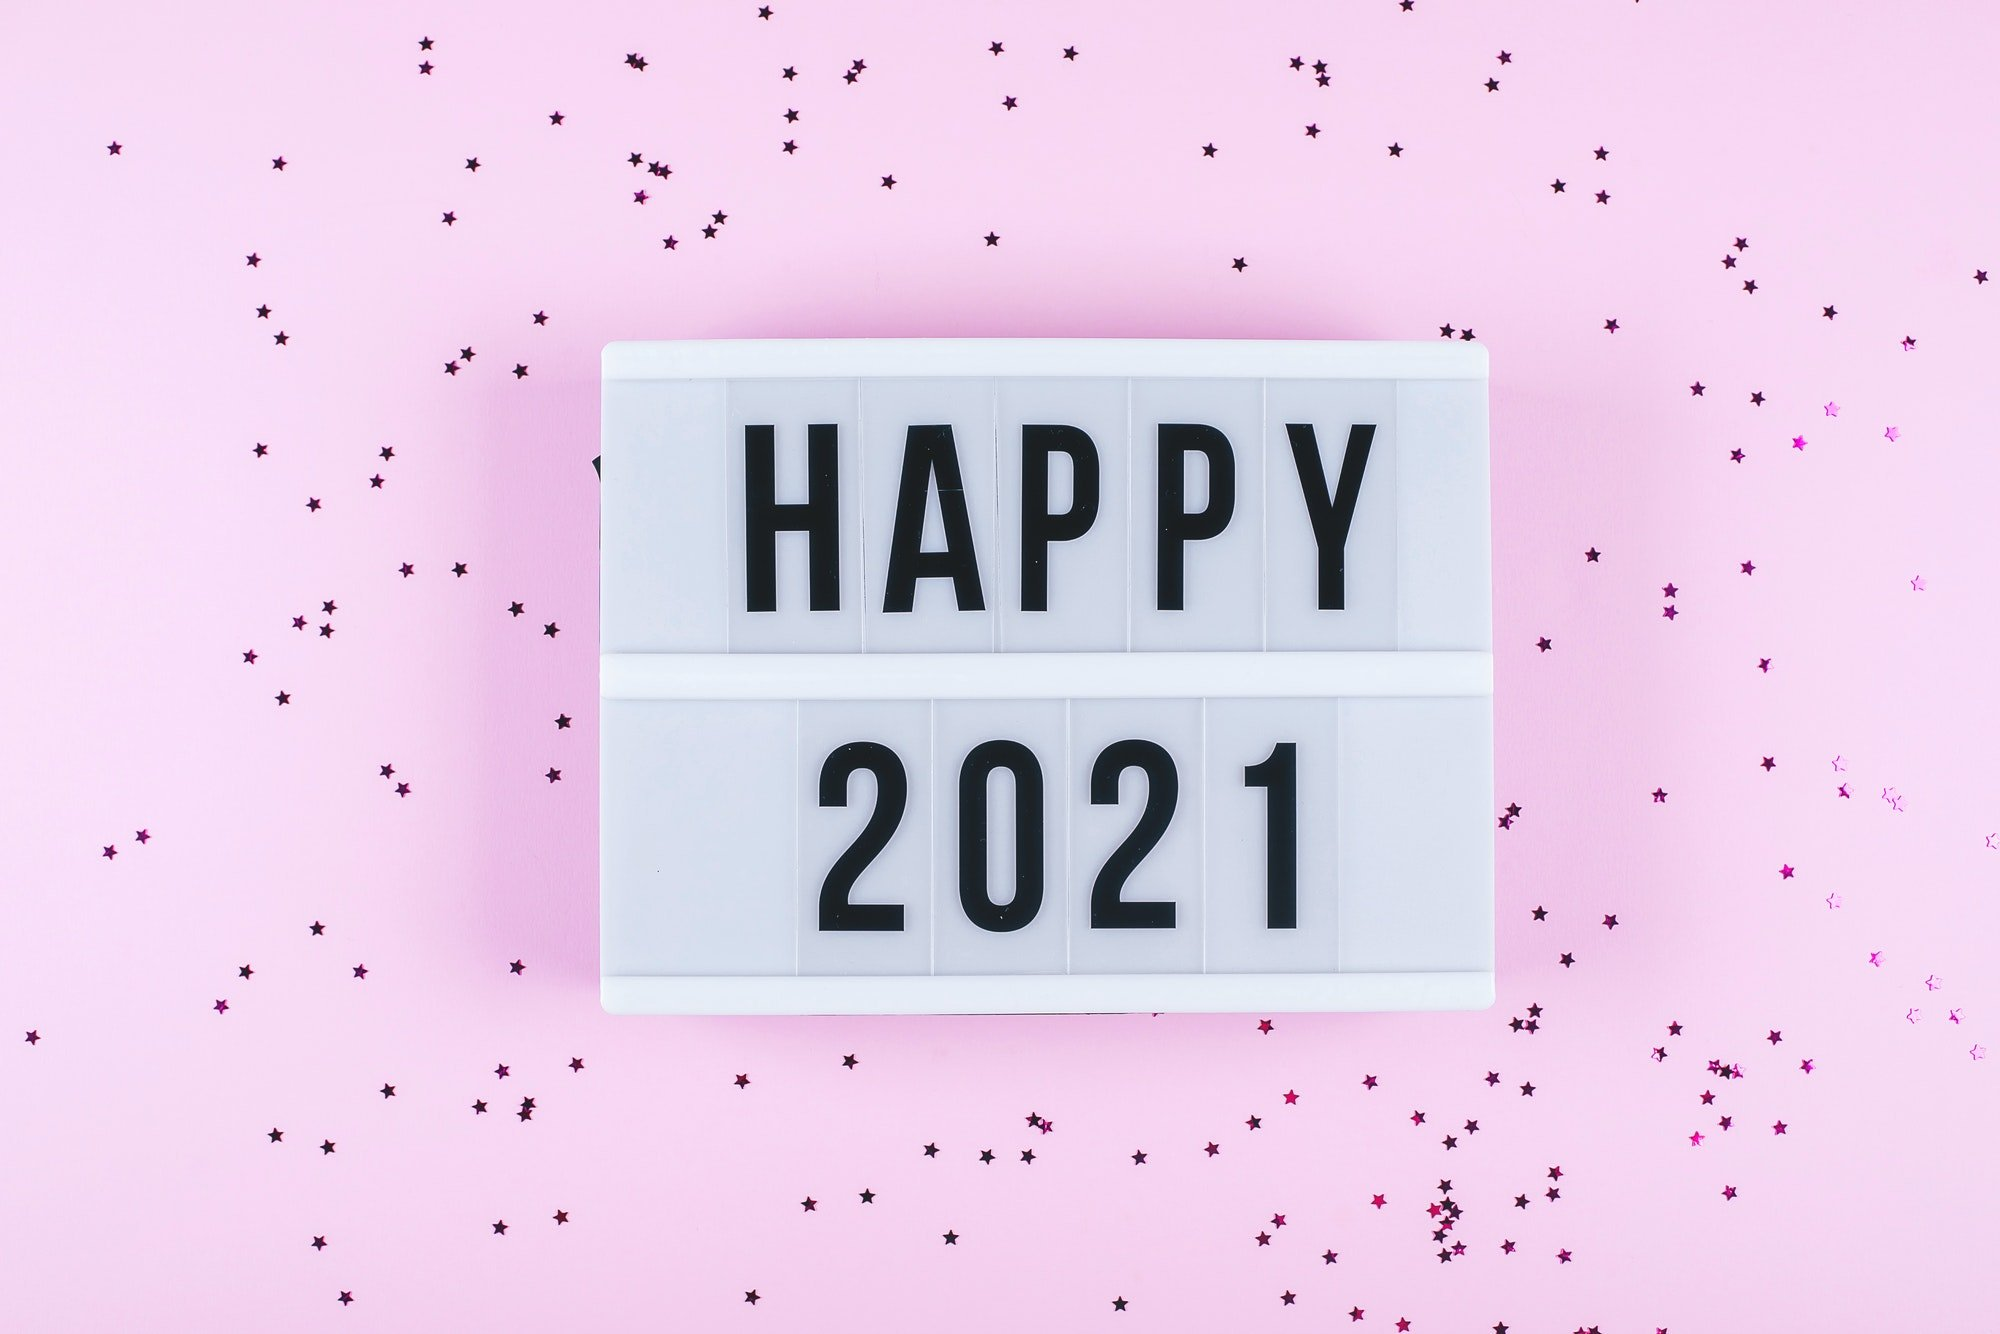 Happy New Year 2021 celebration. Light box with text Happy 2021 and sparkles on pink background